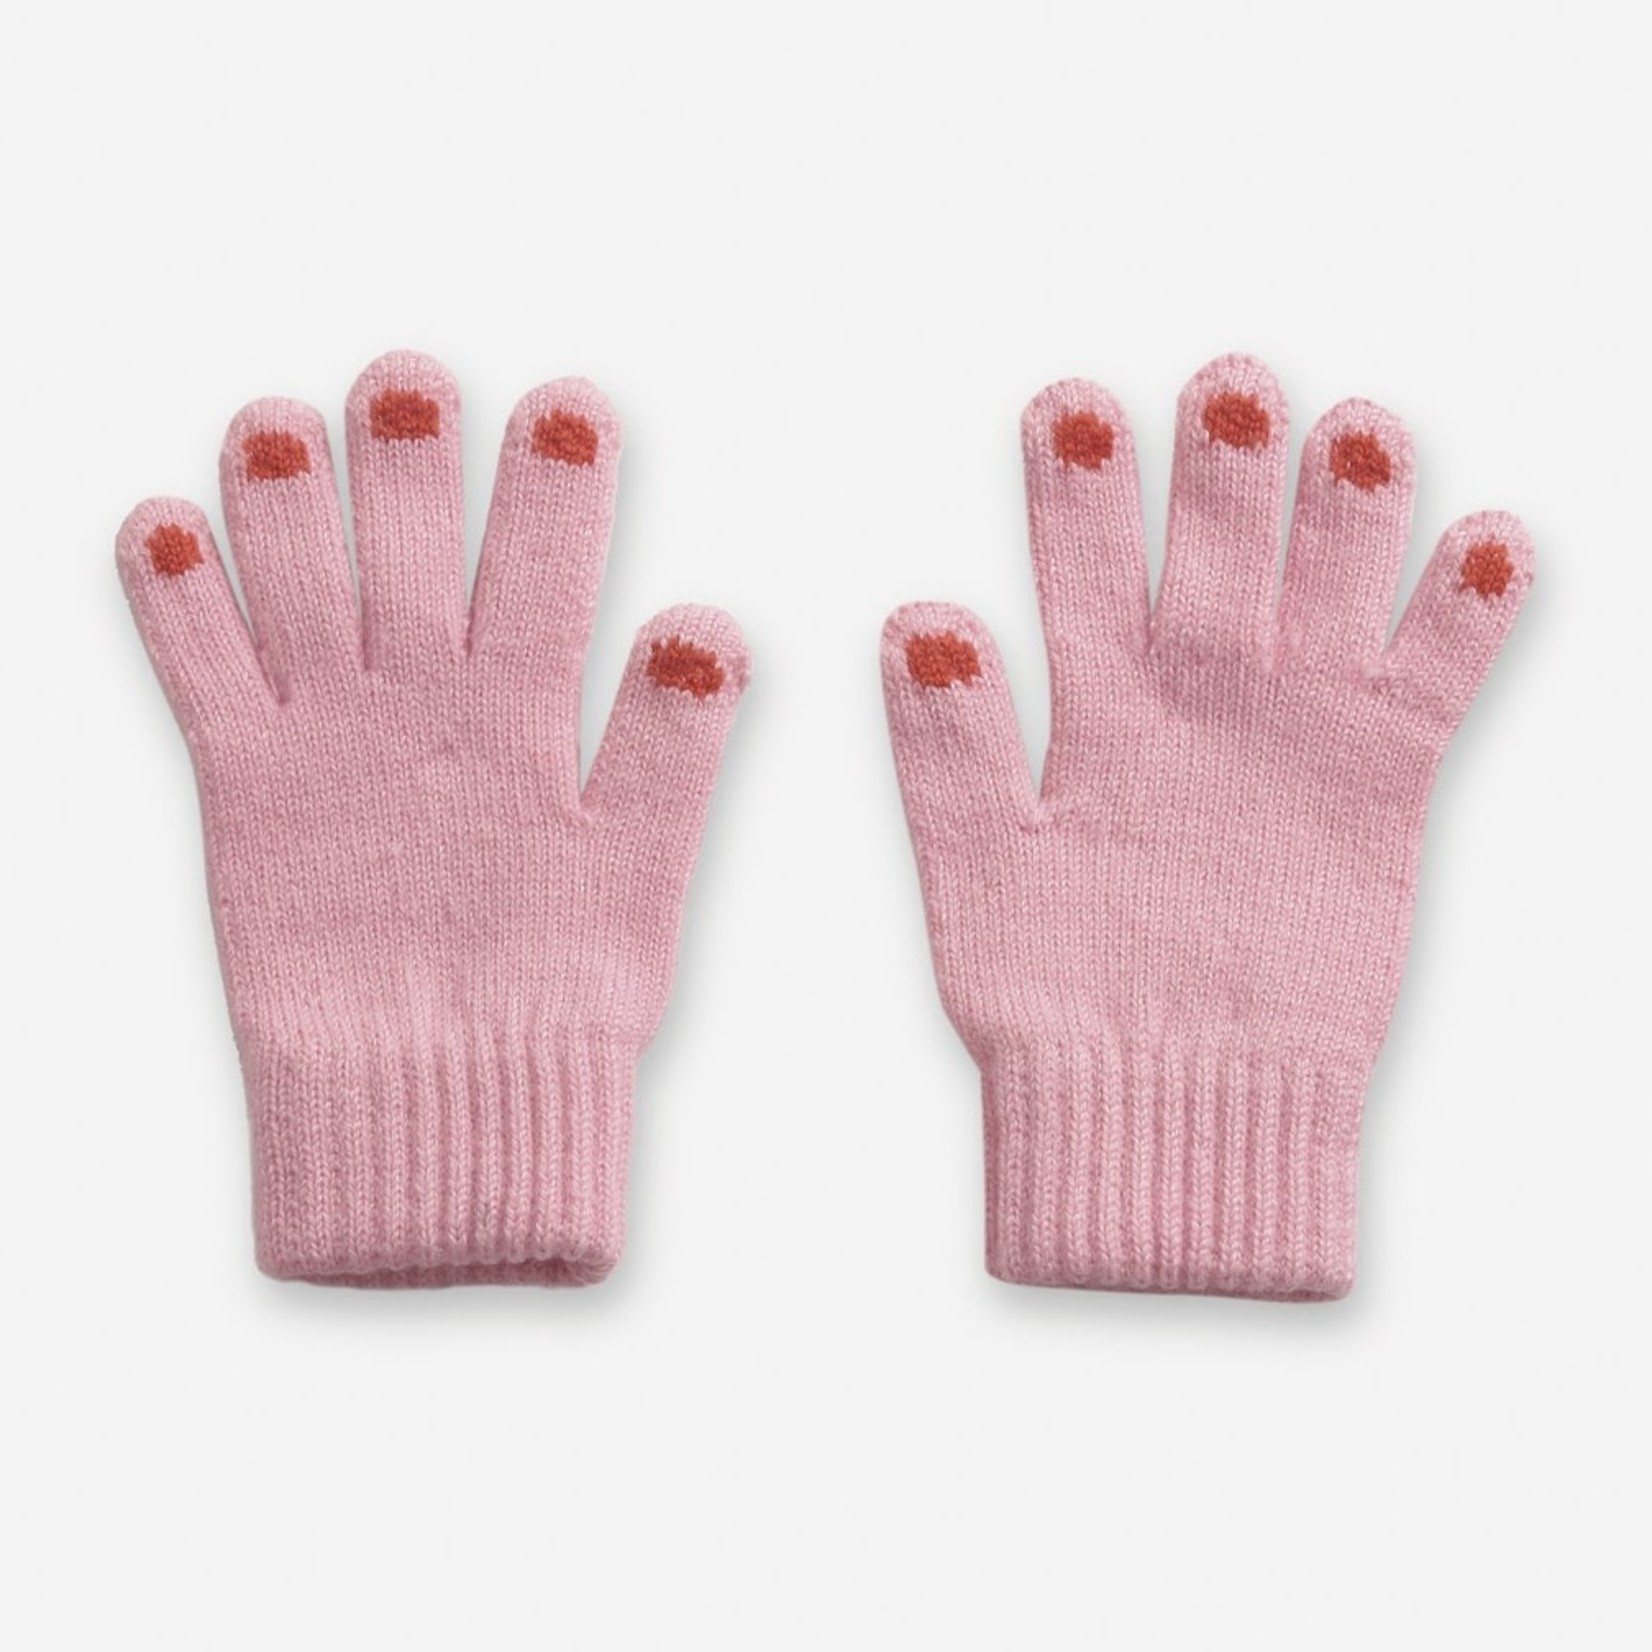 BOBO CHOSES BOBO CHOSES  hands pink knitted gloves